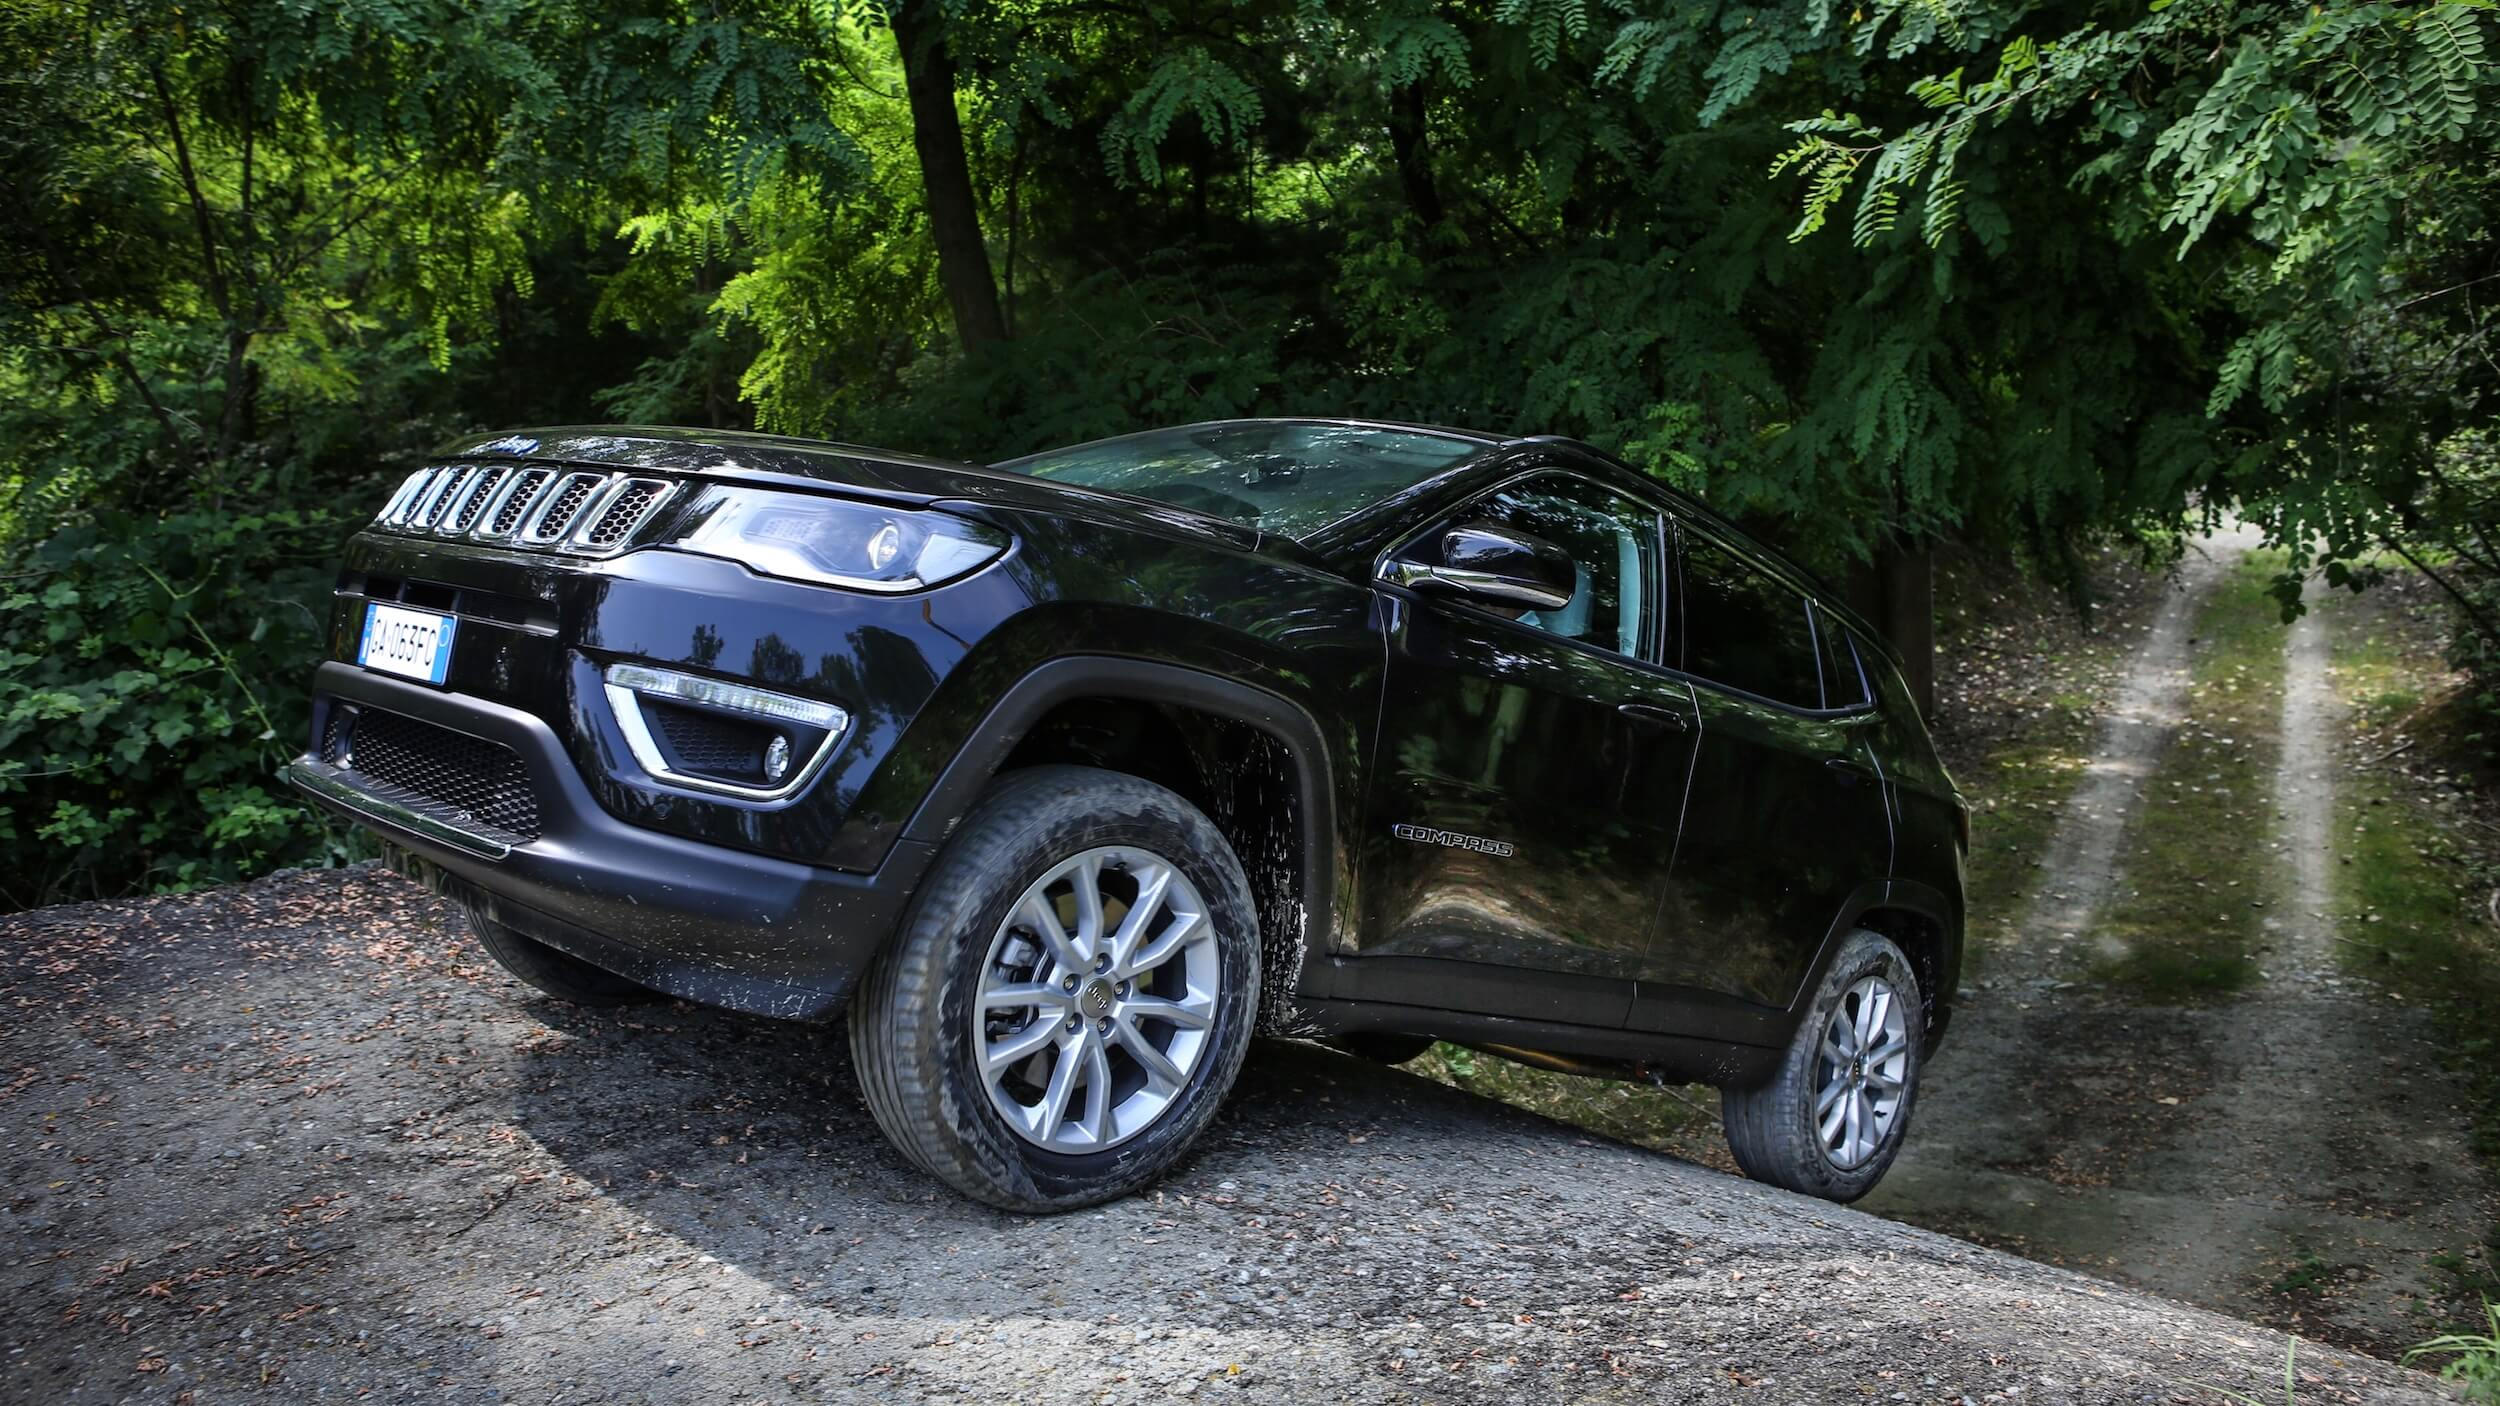 Hybride Jeep Compass 4xe op helling